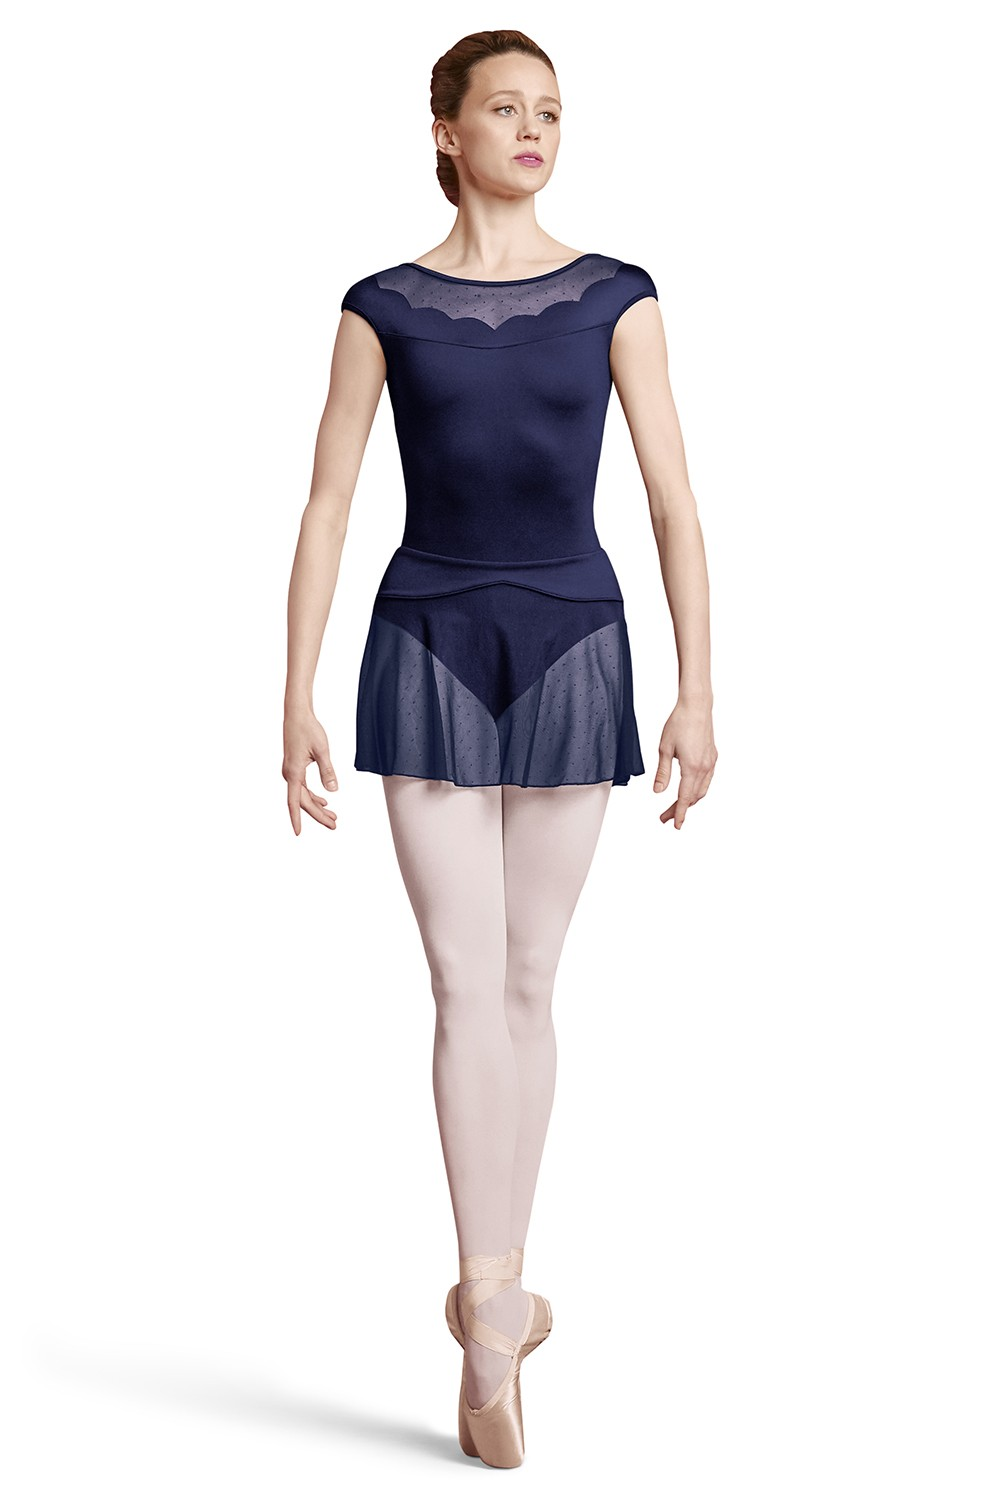 Coeus Women's Dance Skirts